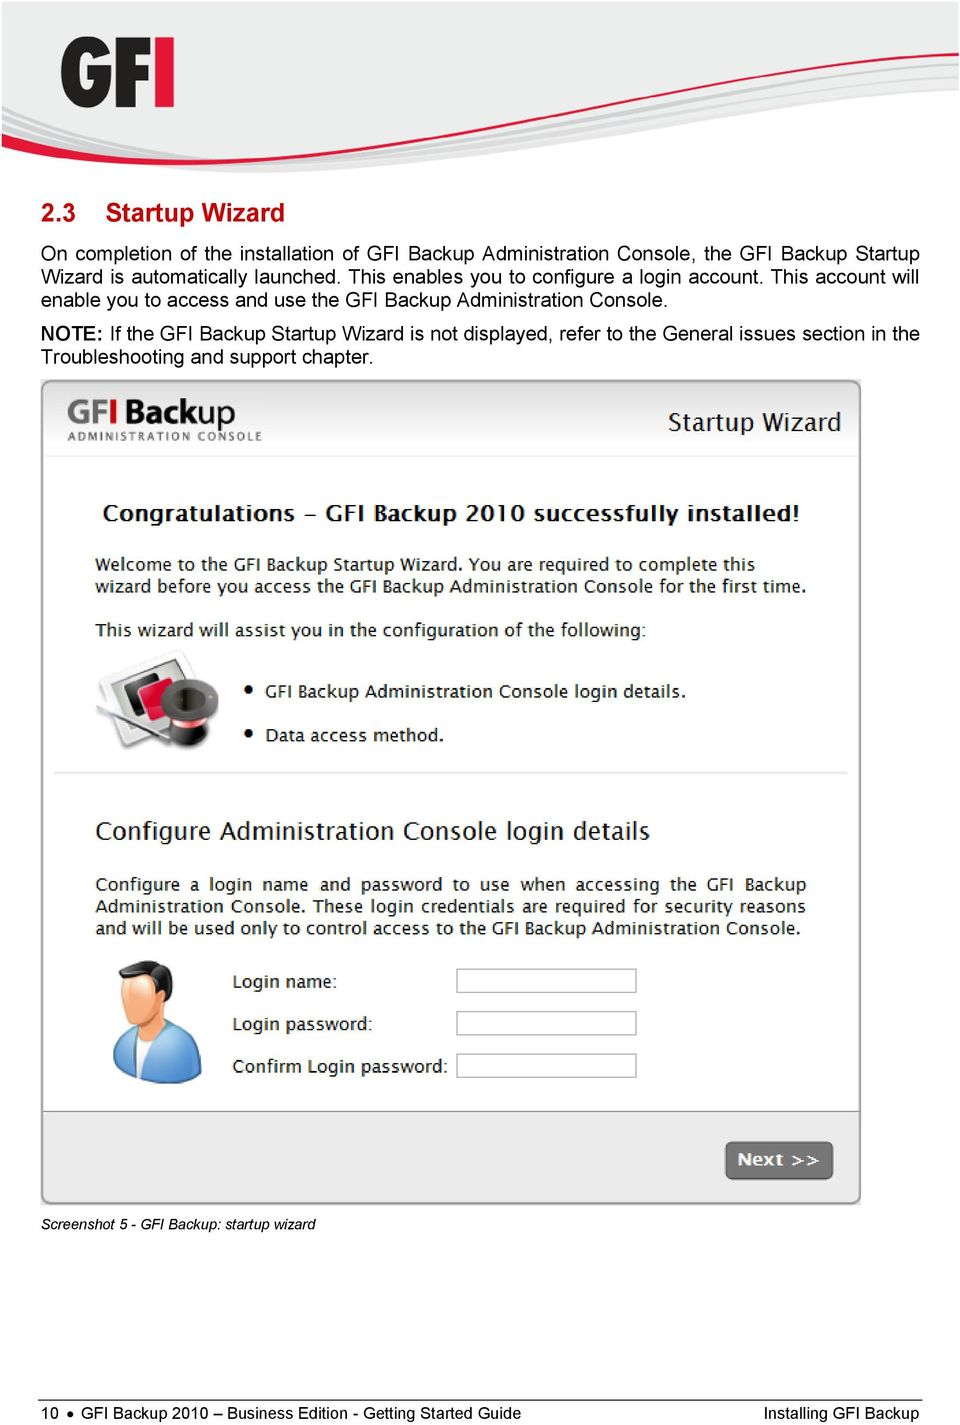 This account will enable you to access and use the GFI Backup Administration Console.